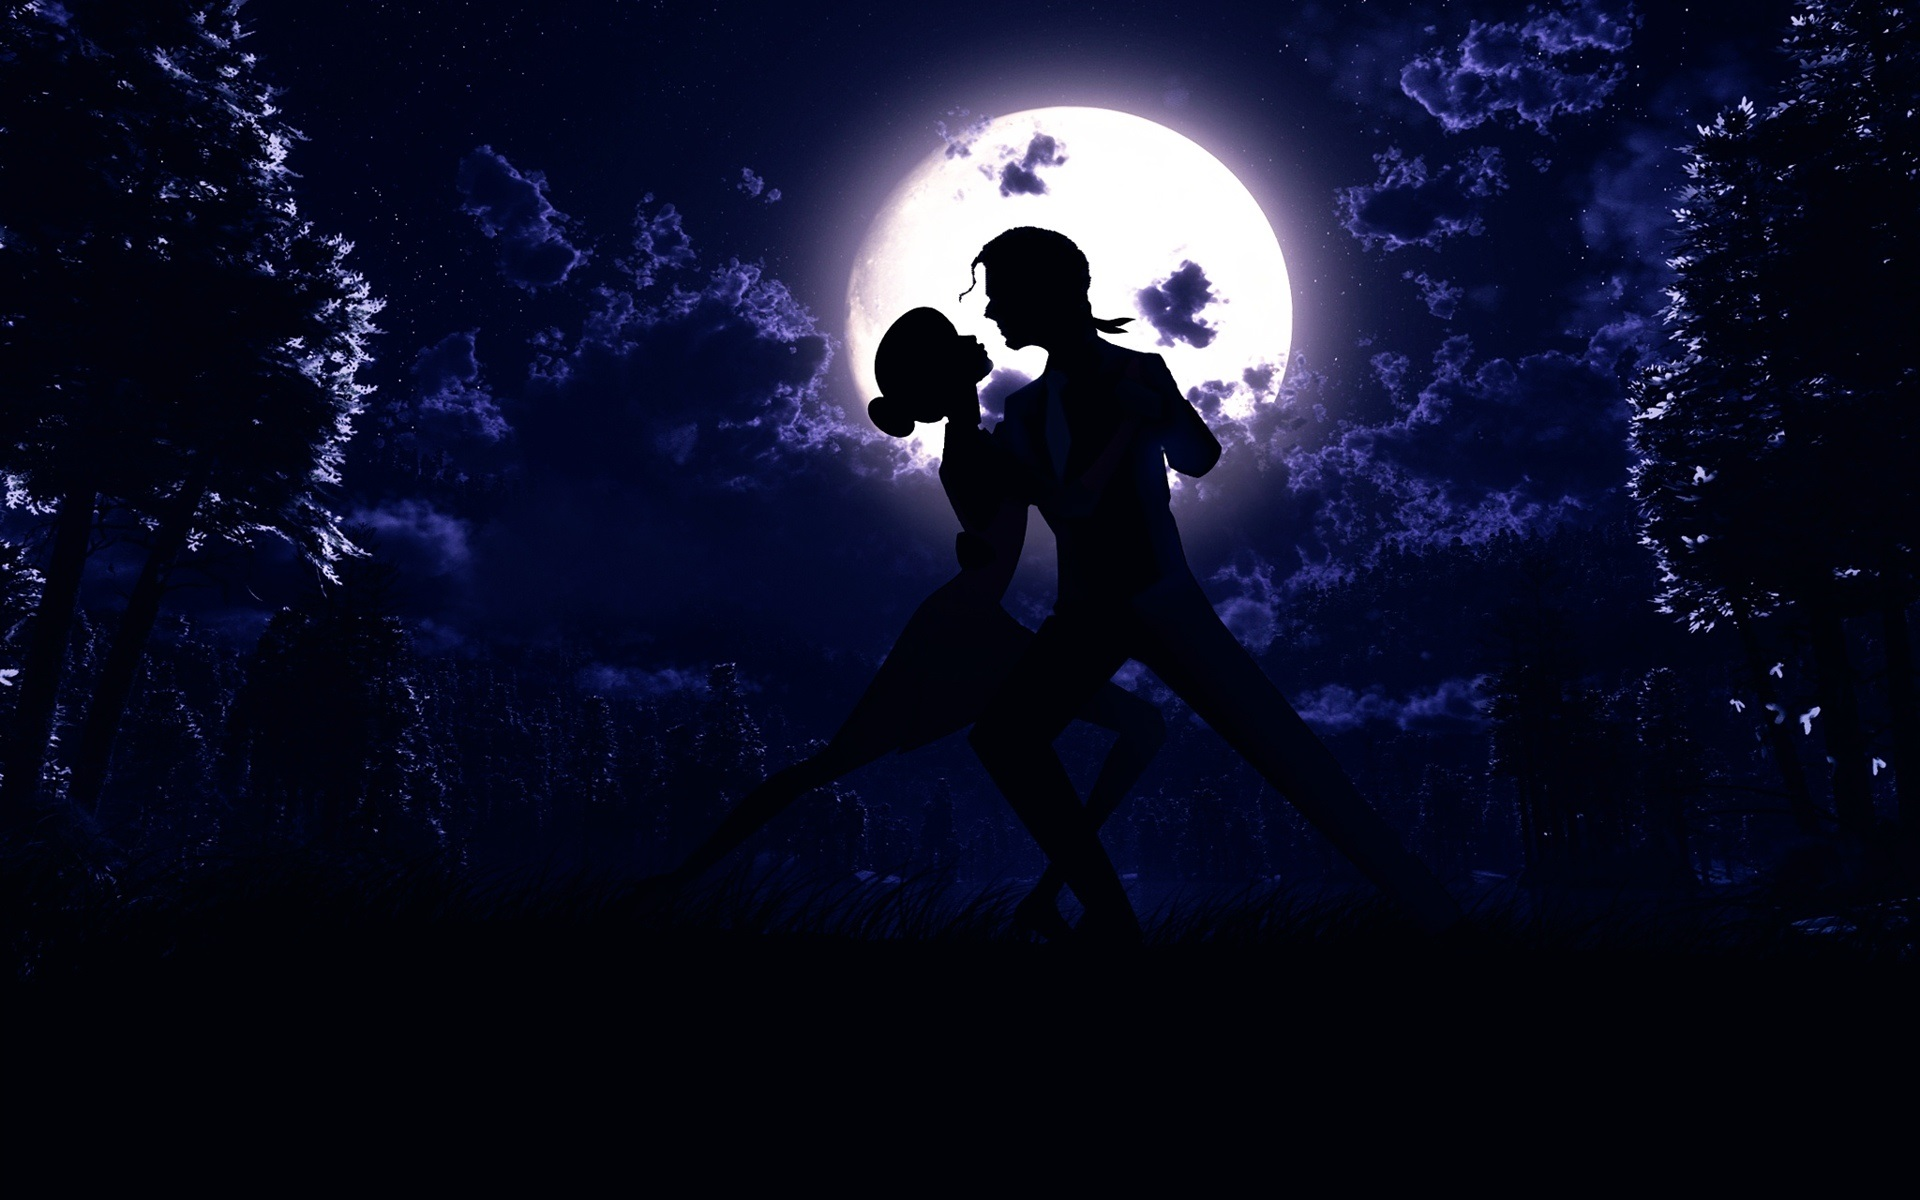 Most Inspiring Wallpaper Night Love - Moon-night-pair-dance-love-silhouette-art-pictures_1920x1200  Gallery-171128.jpg